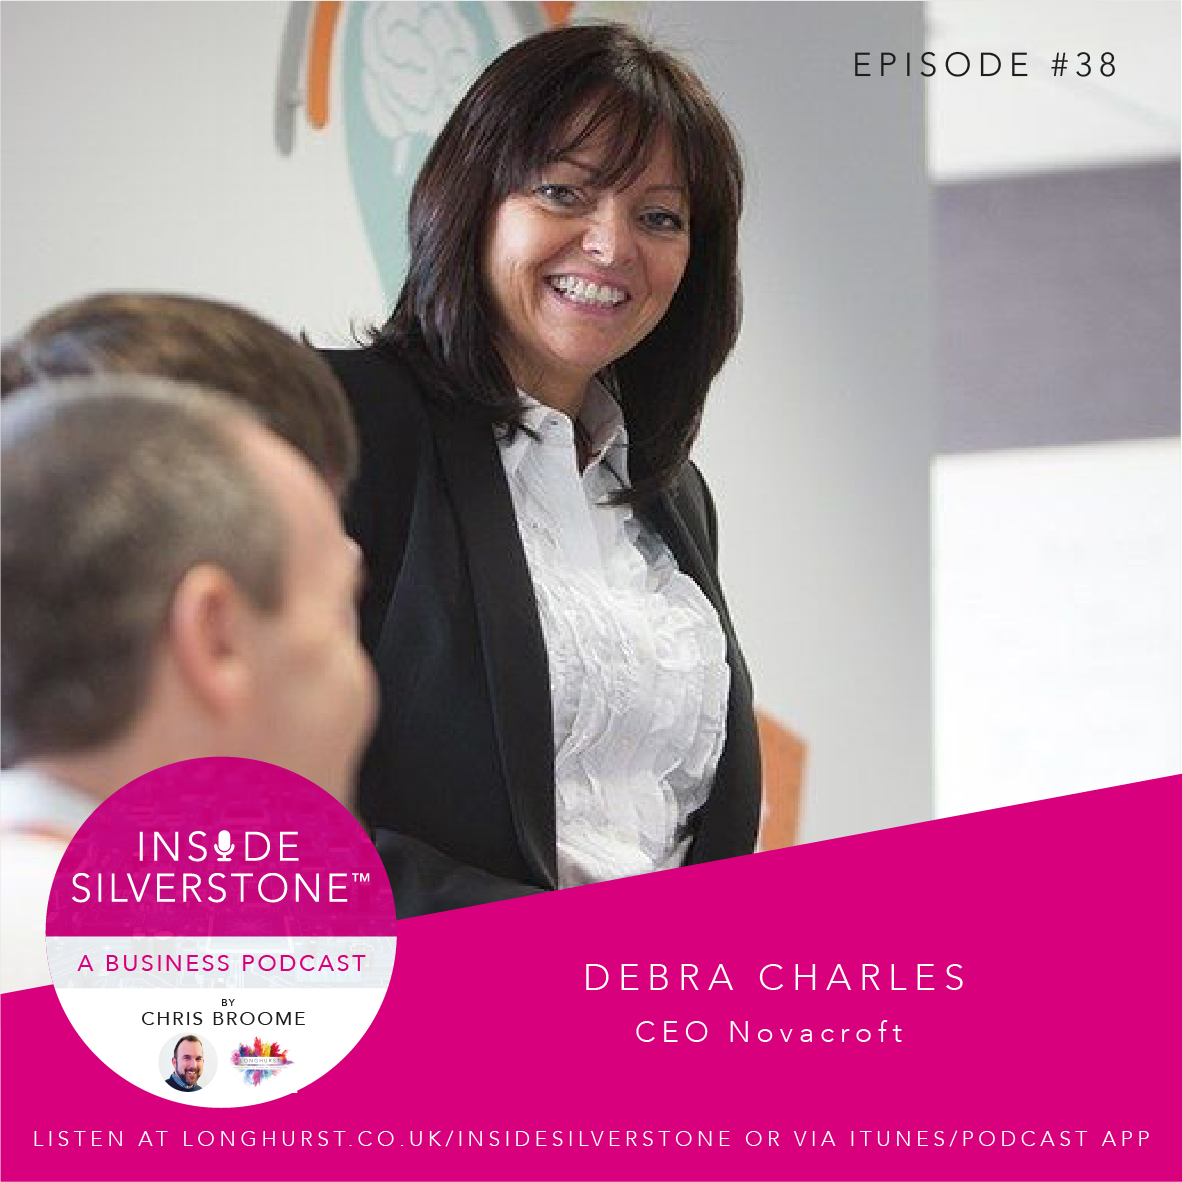 Debra Charles, CEO Novacroft, and former Westinghouse and Apple